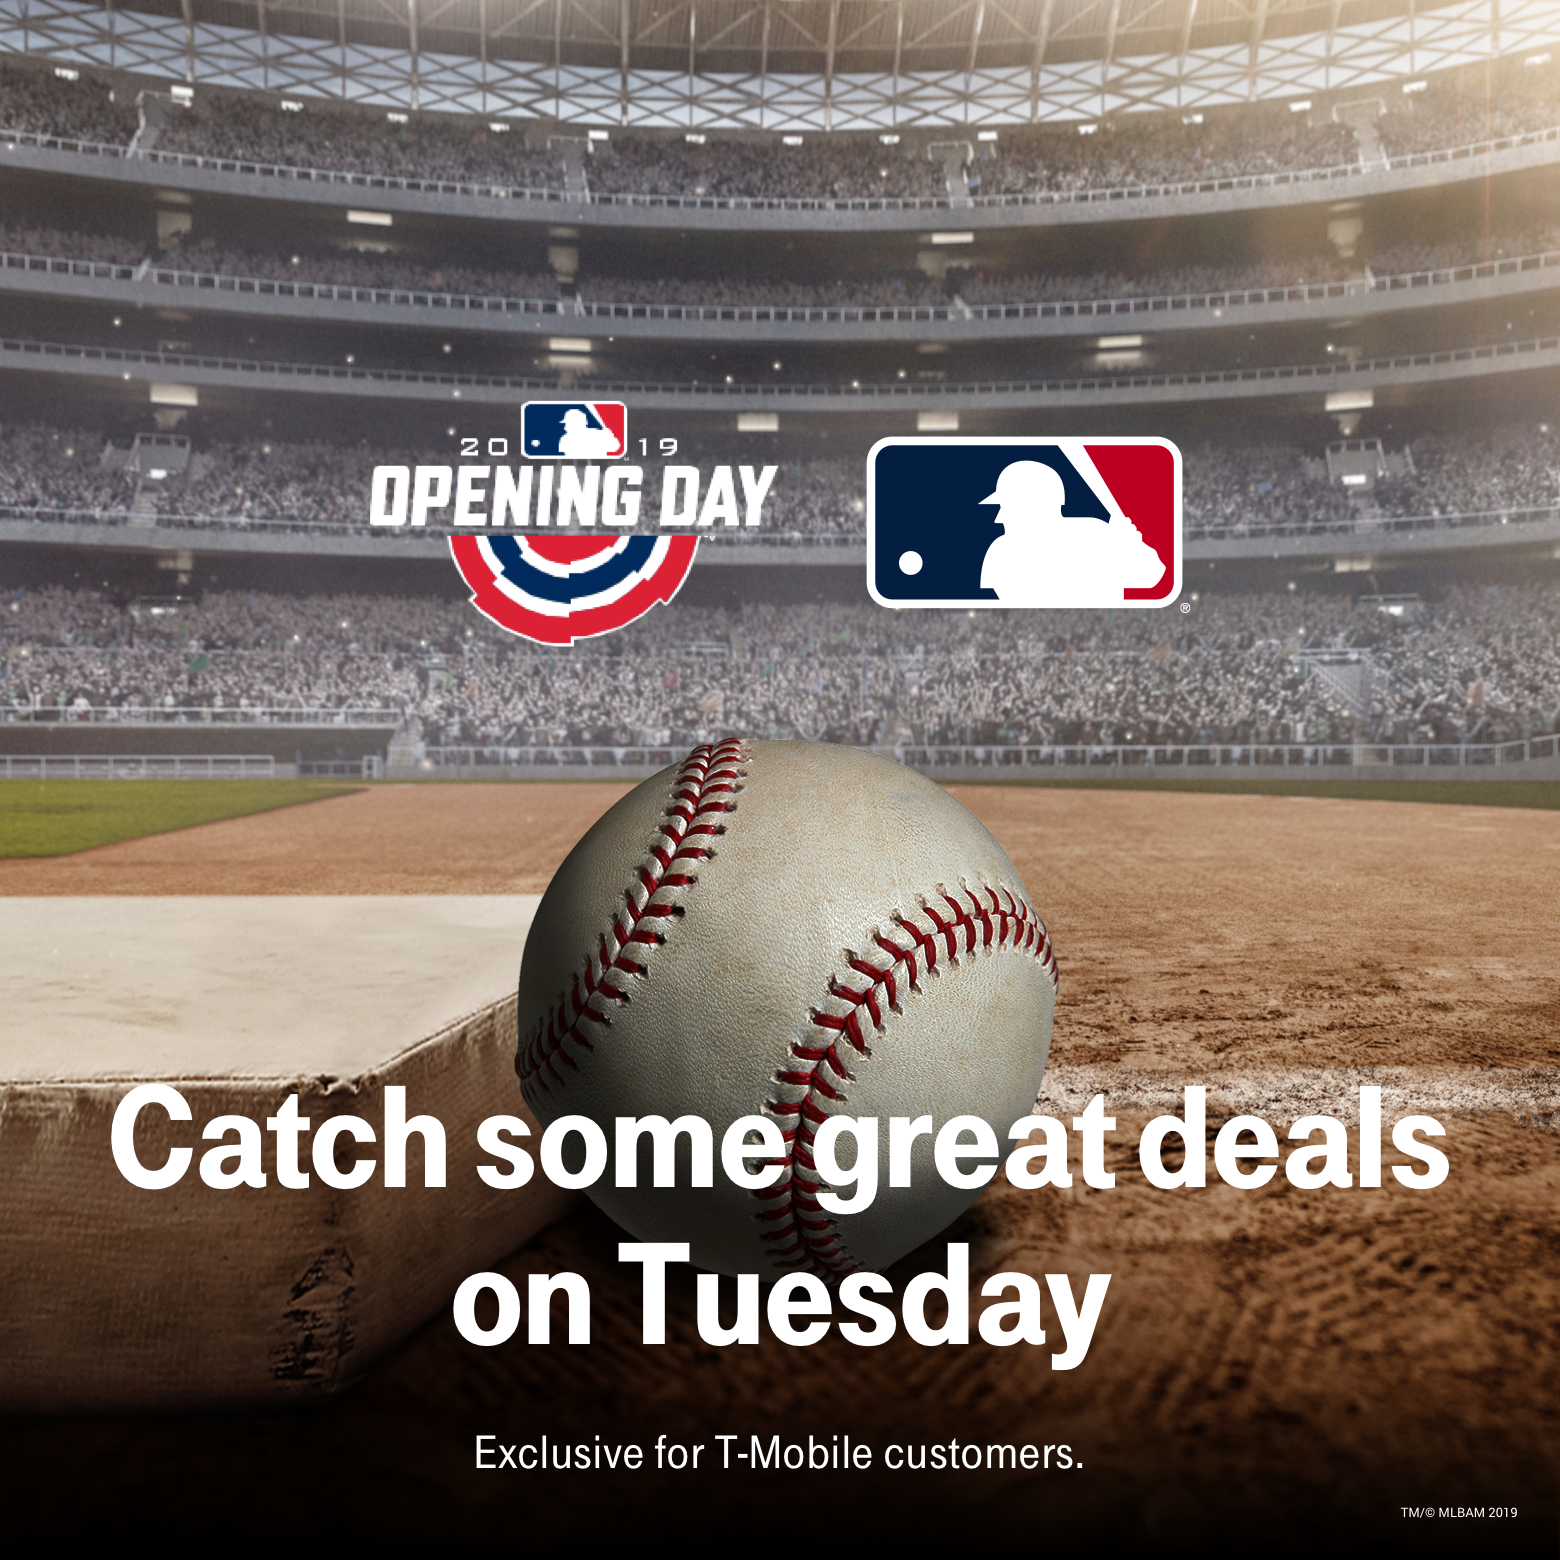 Catch some great deals on Tuesday. Exclusive for T-Mobile customers.